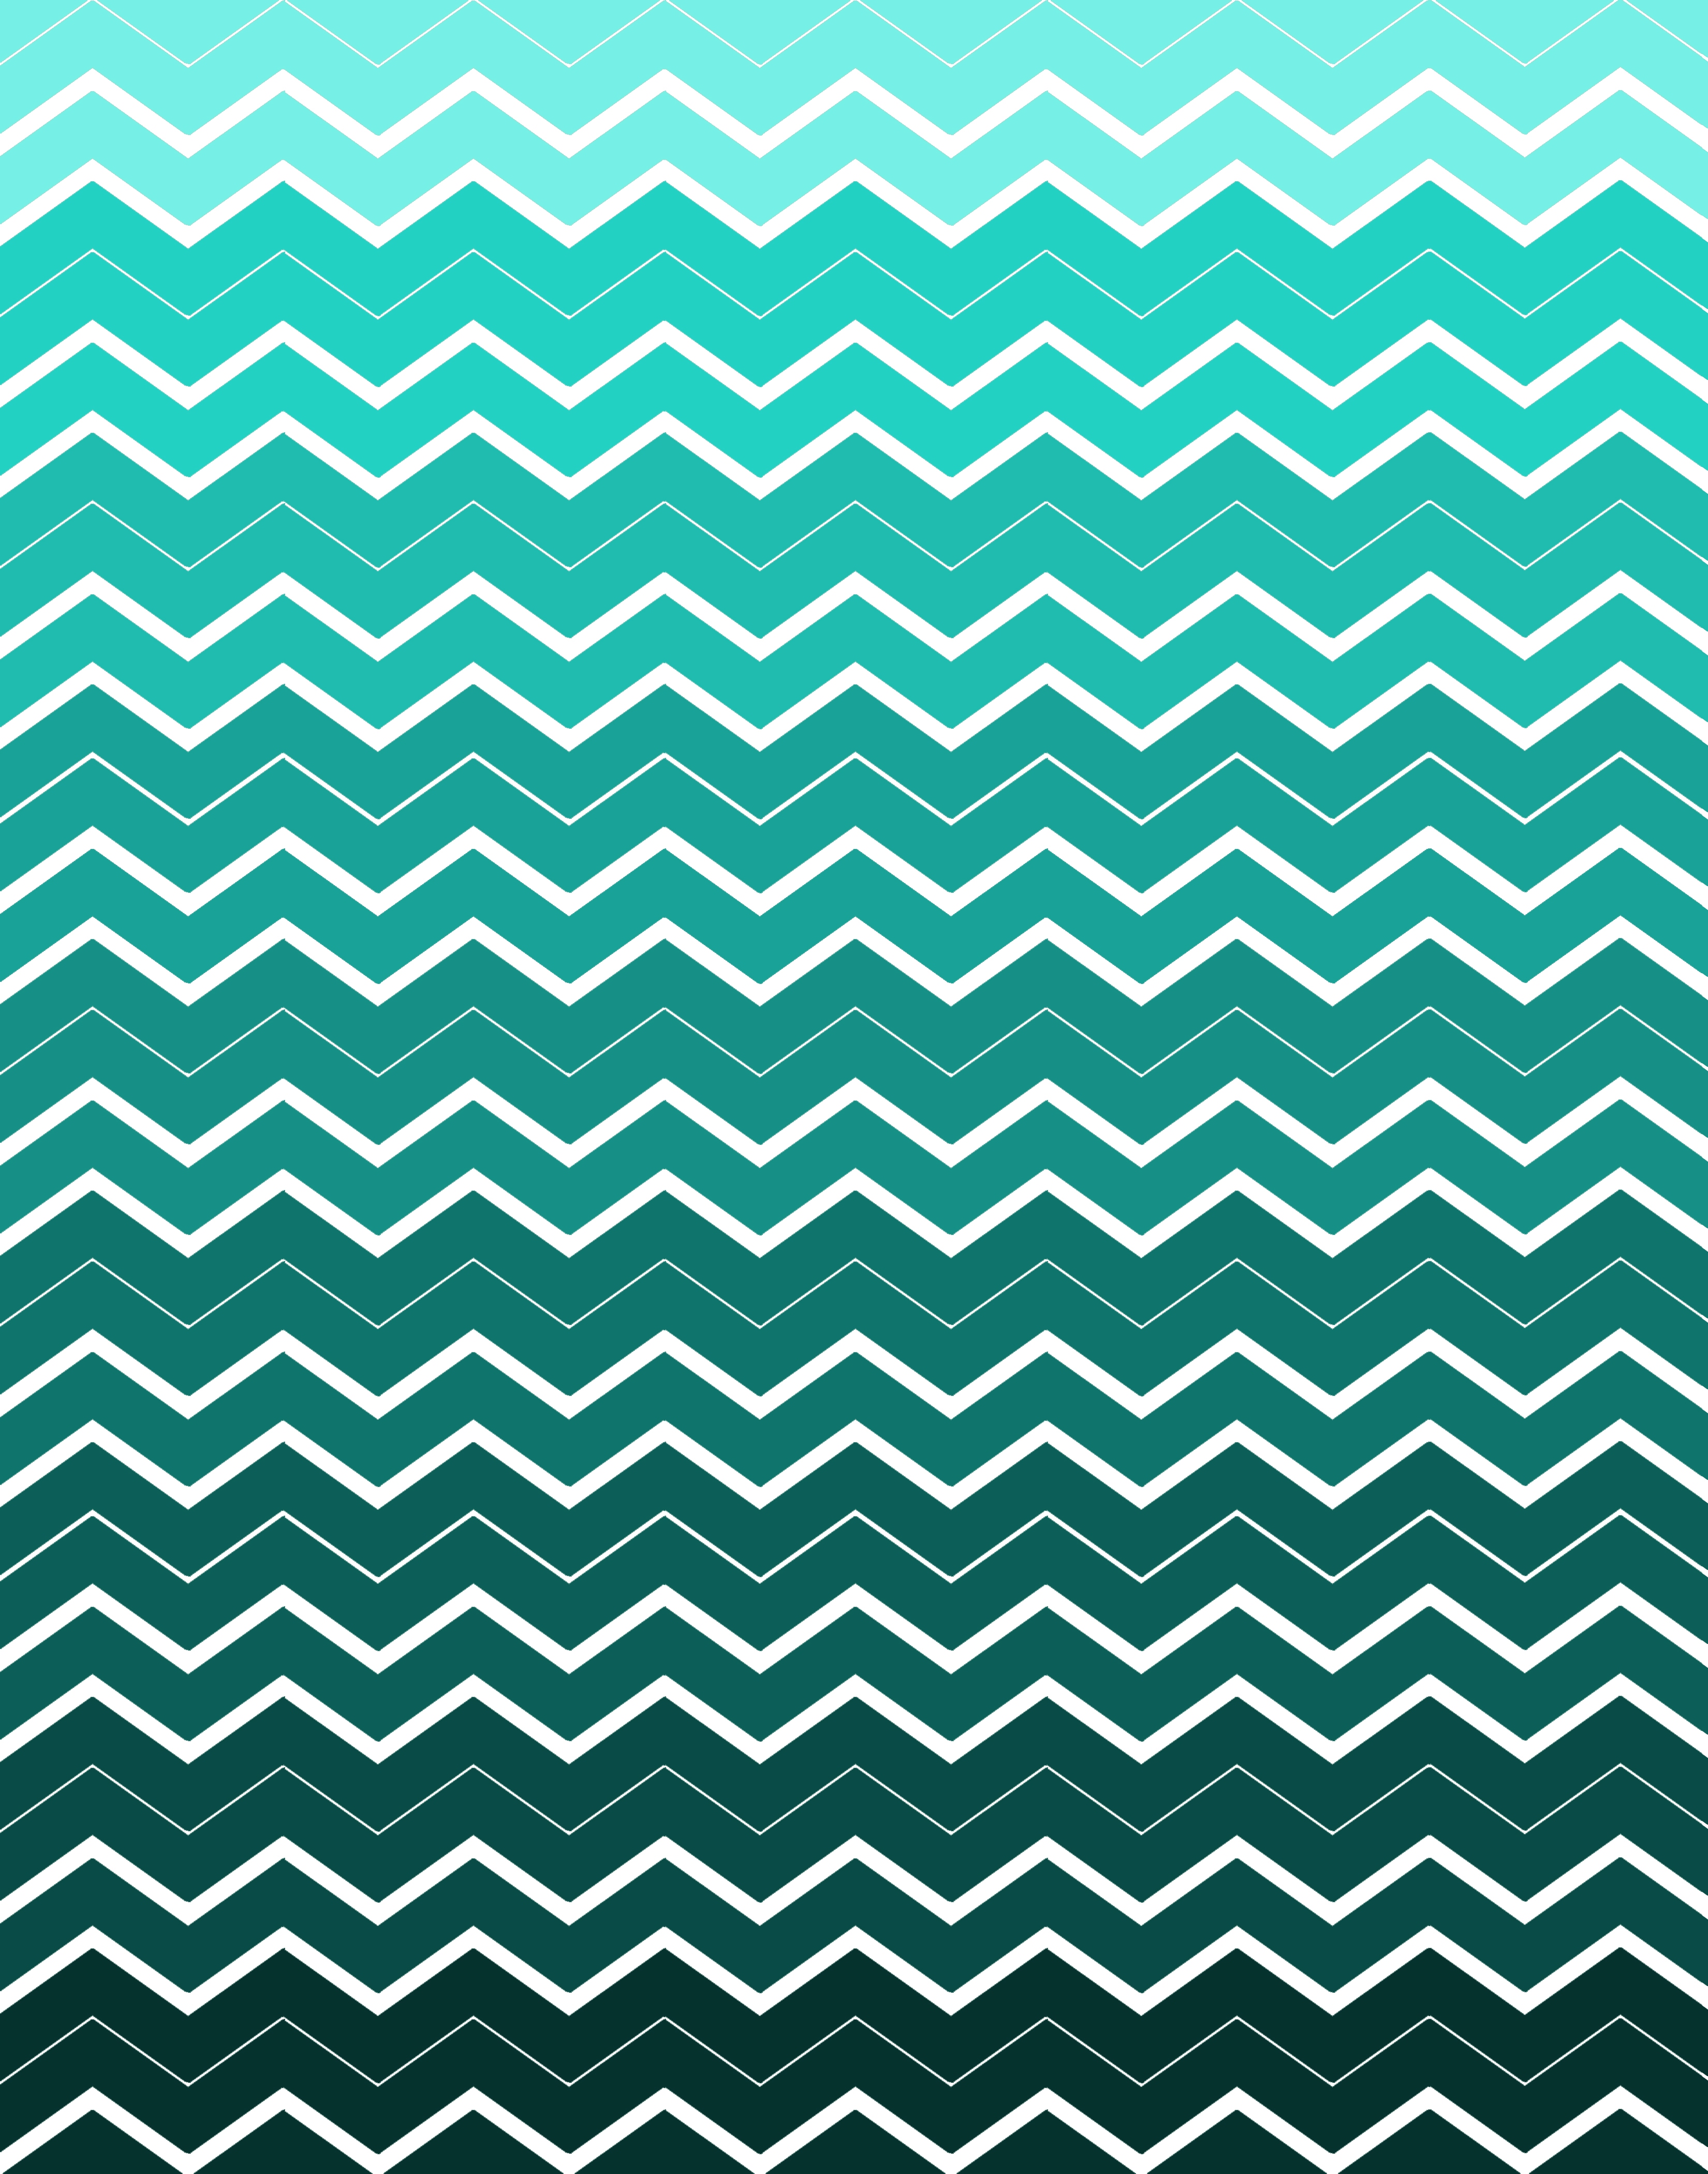 Green Ombre Chevron Background by Pauleenanne Design